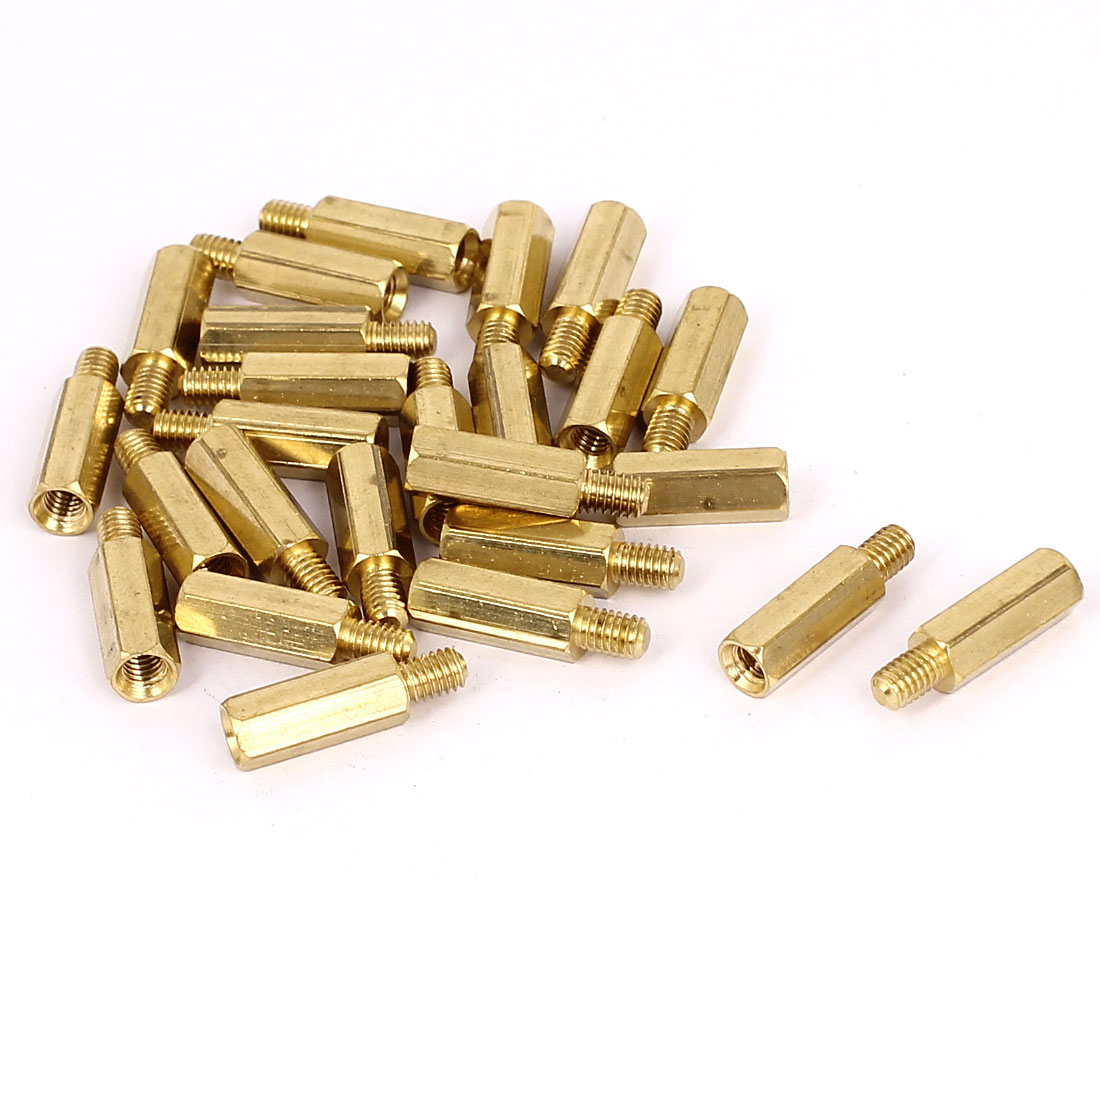 M4x15+6mm Female/Male Thread Brass Hex Standoff Pillar Spacer Coupler Nut 25pcs